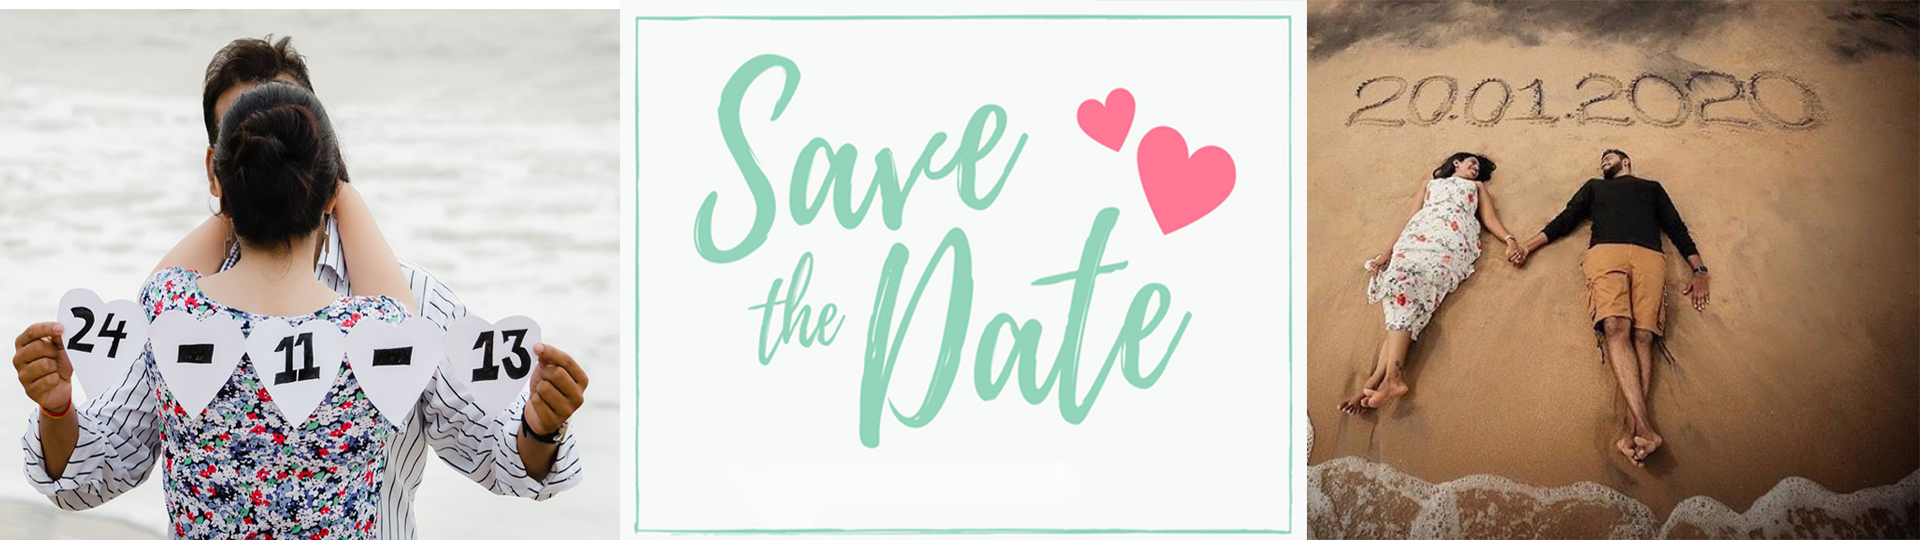 save-the-date-shaadiwala-jaipur